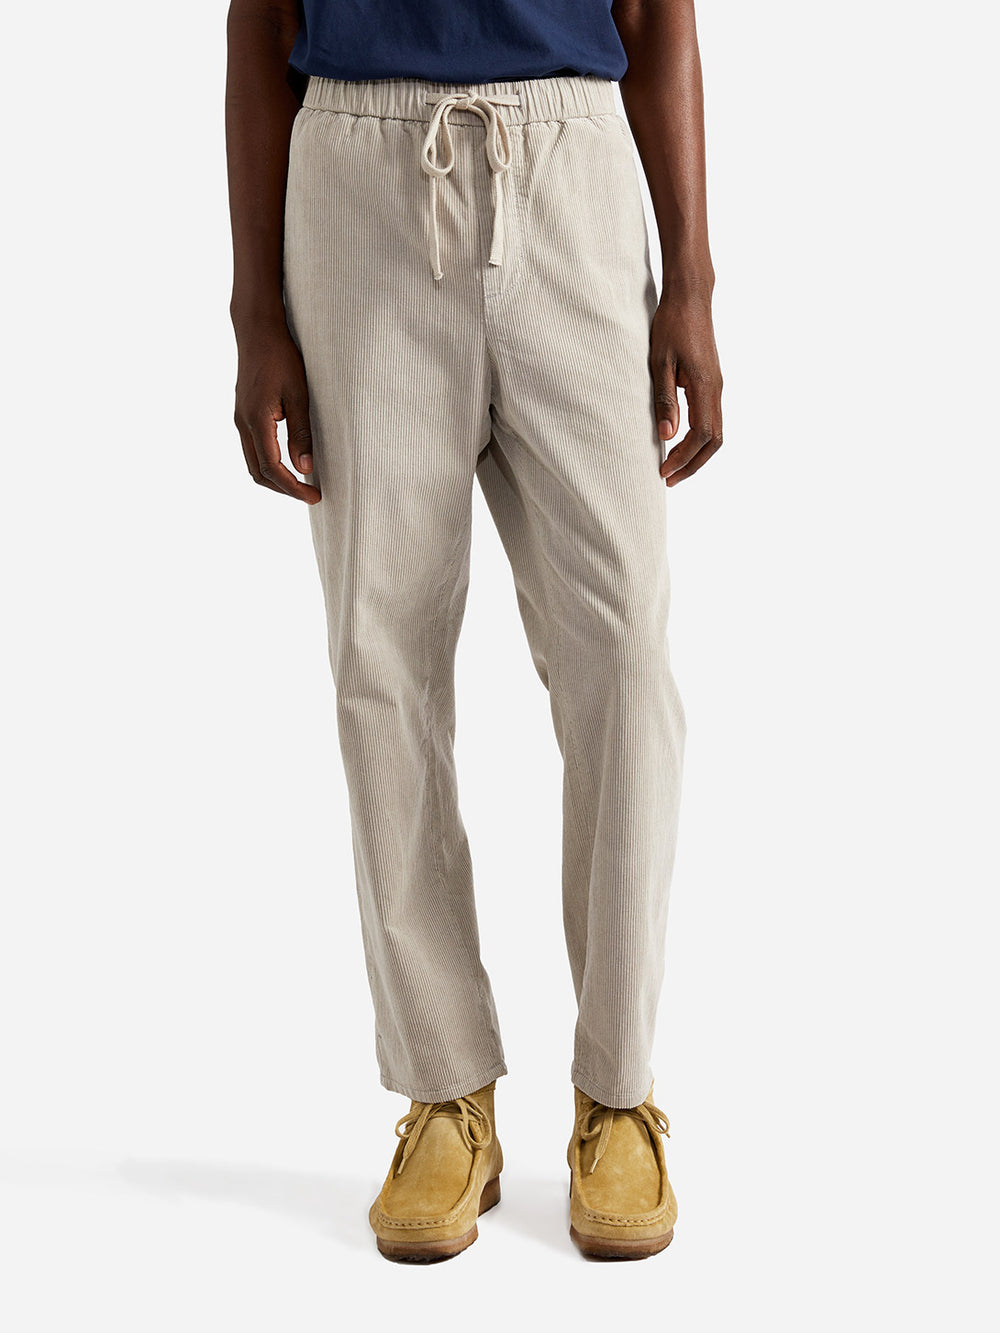 ISSA PAINTER PANTS BEIGE - ONS Clothing